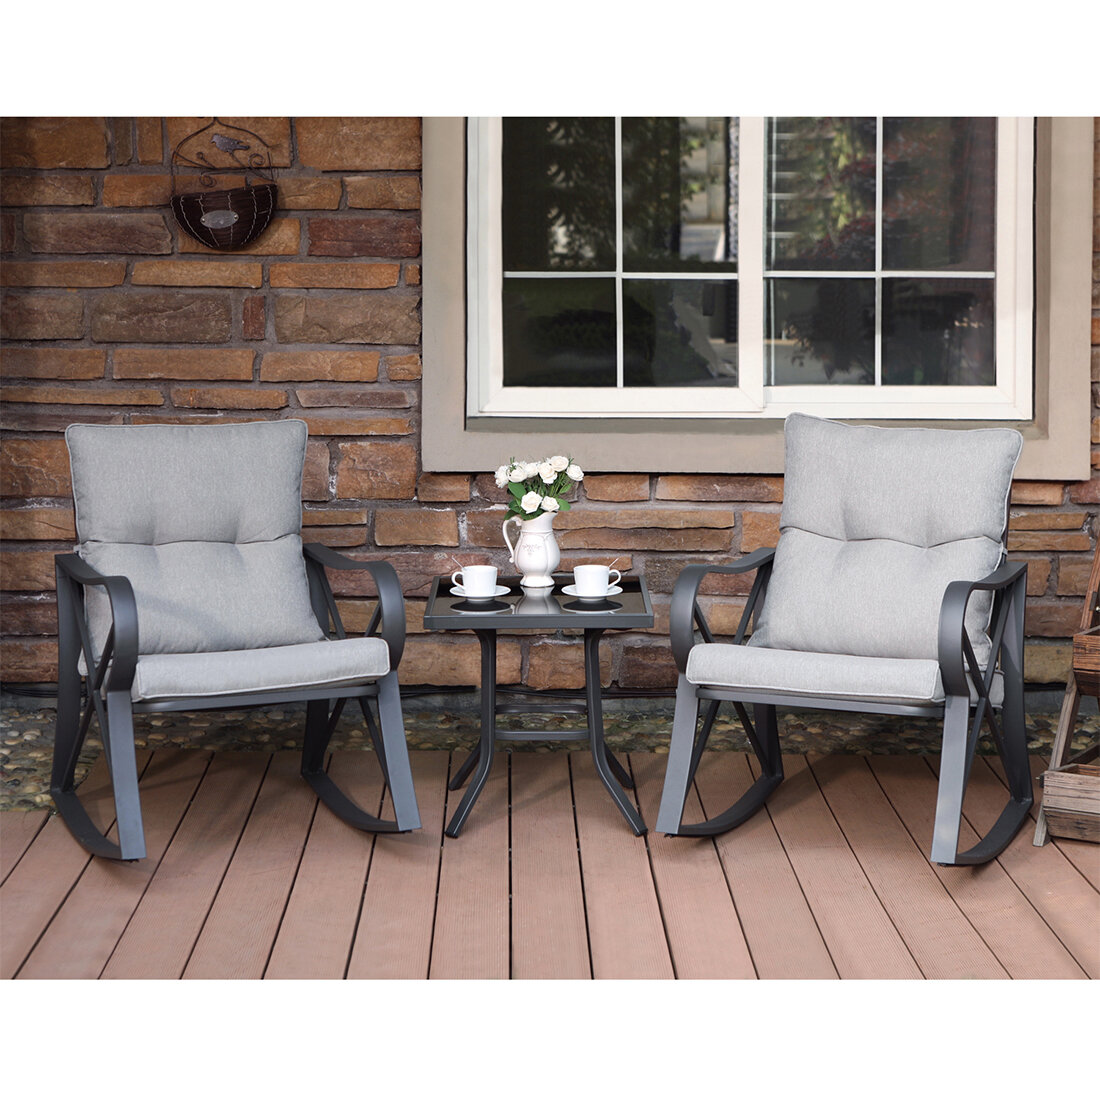 3 Piece Outdoor Patio Furniture